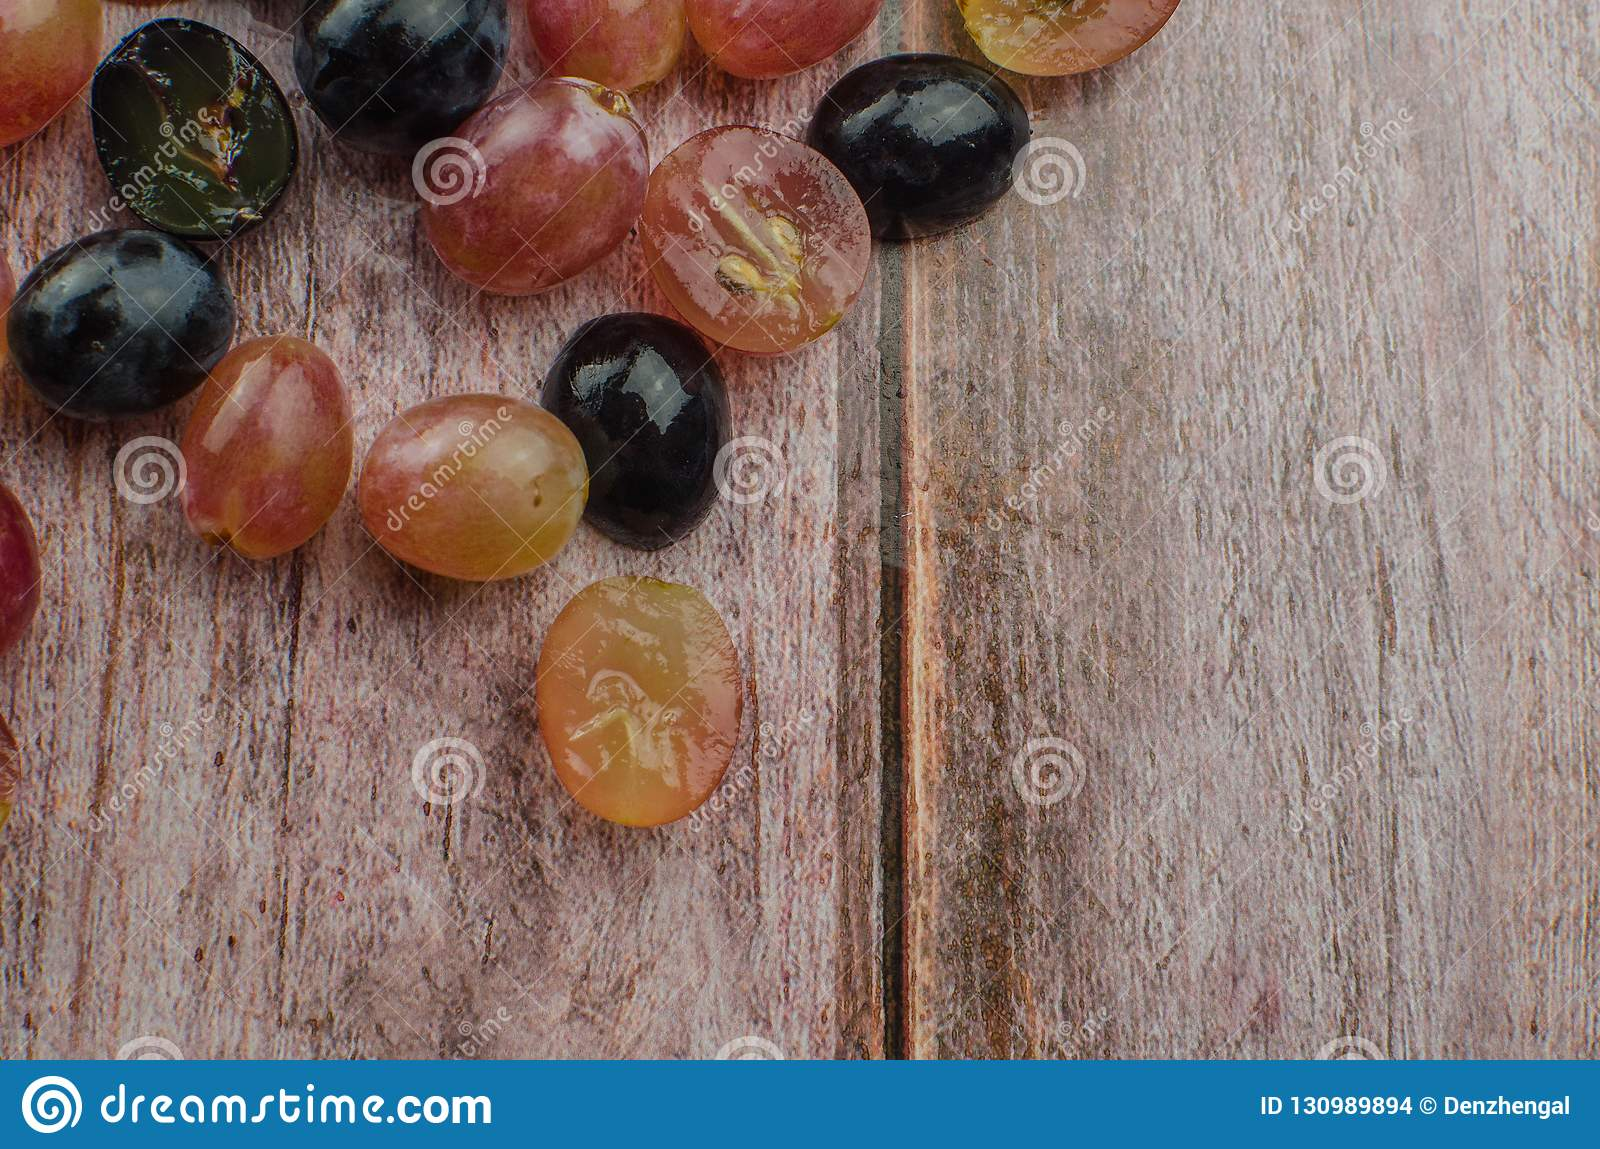 Blue grapes with green leaf healthy eating, isolated